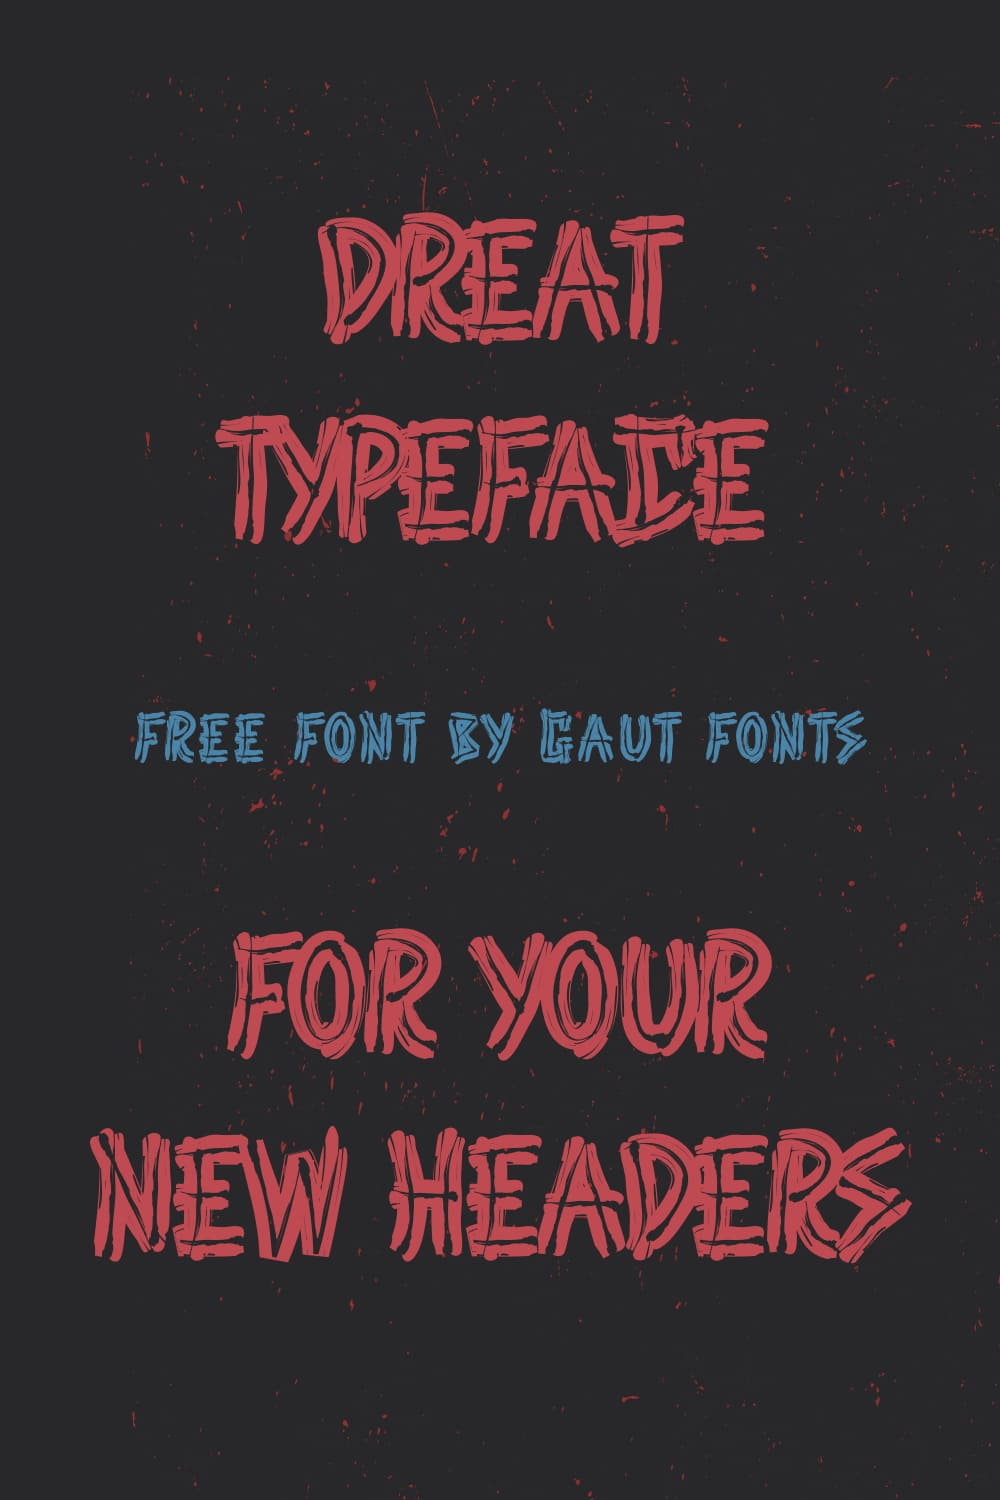 Red font, like a brushstroke on a black background.